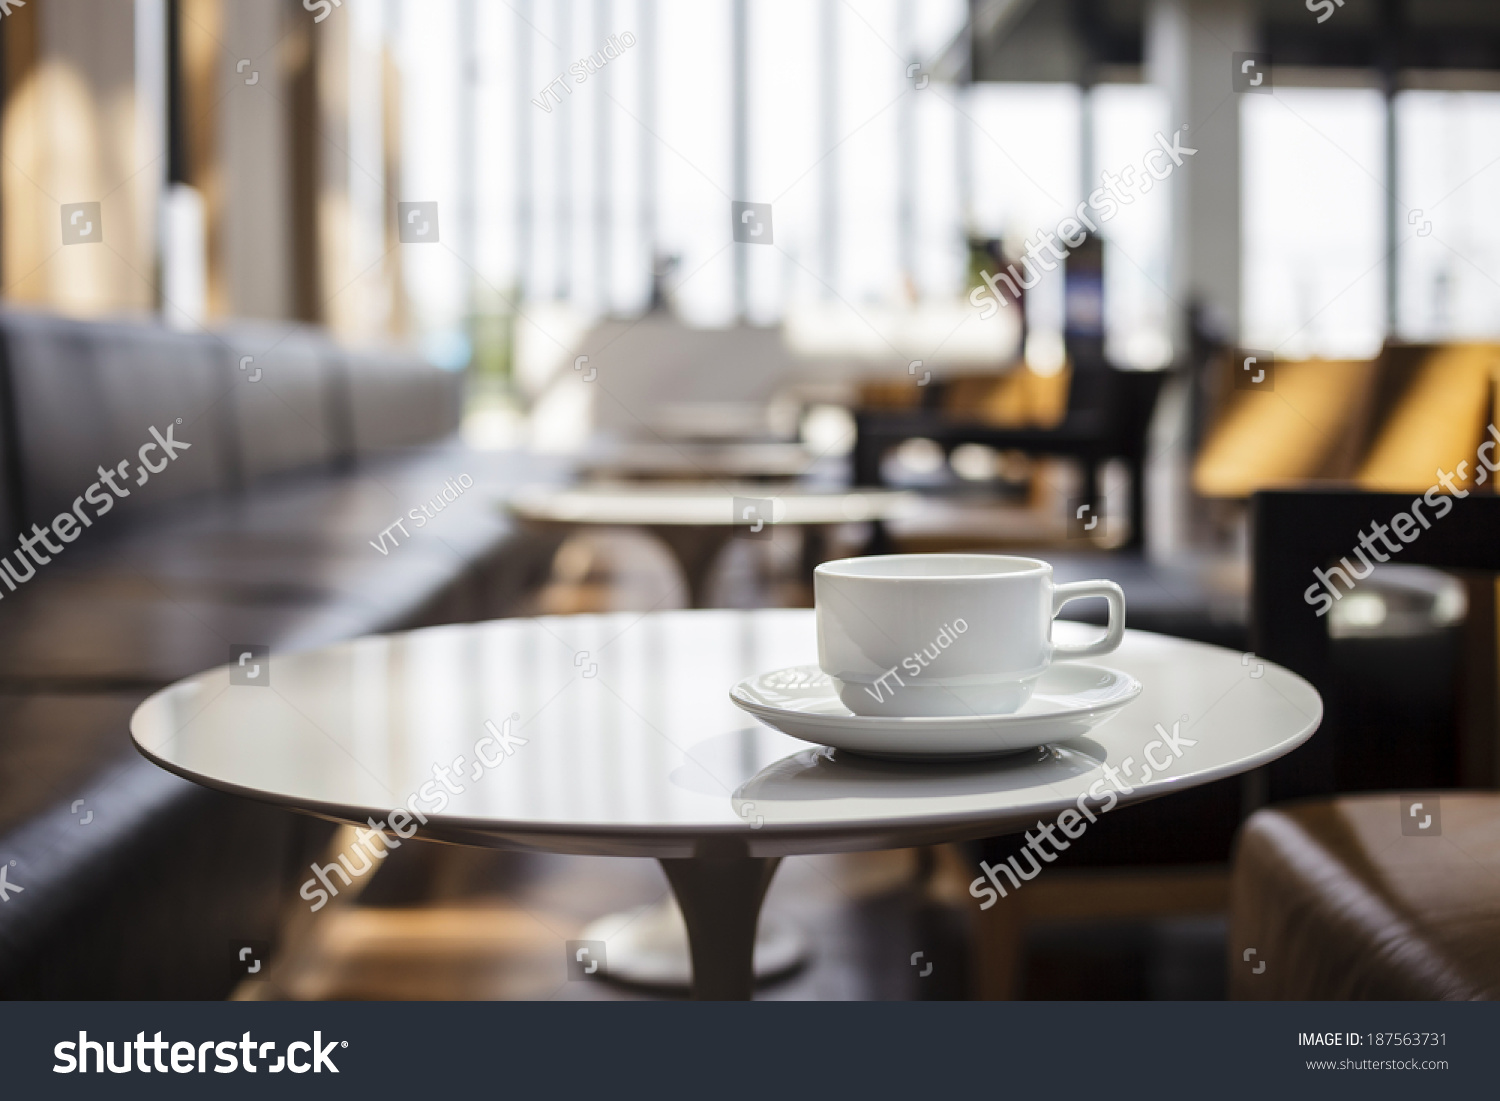 Coffee shop cafe interior with table stock photo 187563731 shutterstock Tables for coffee shop